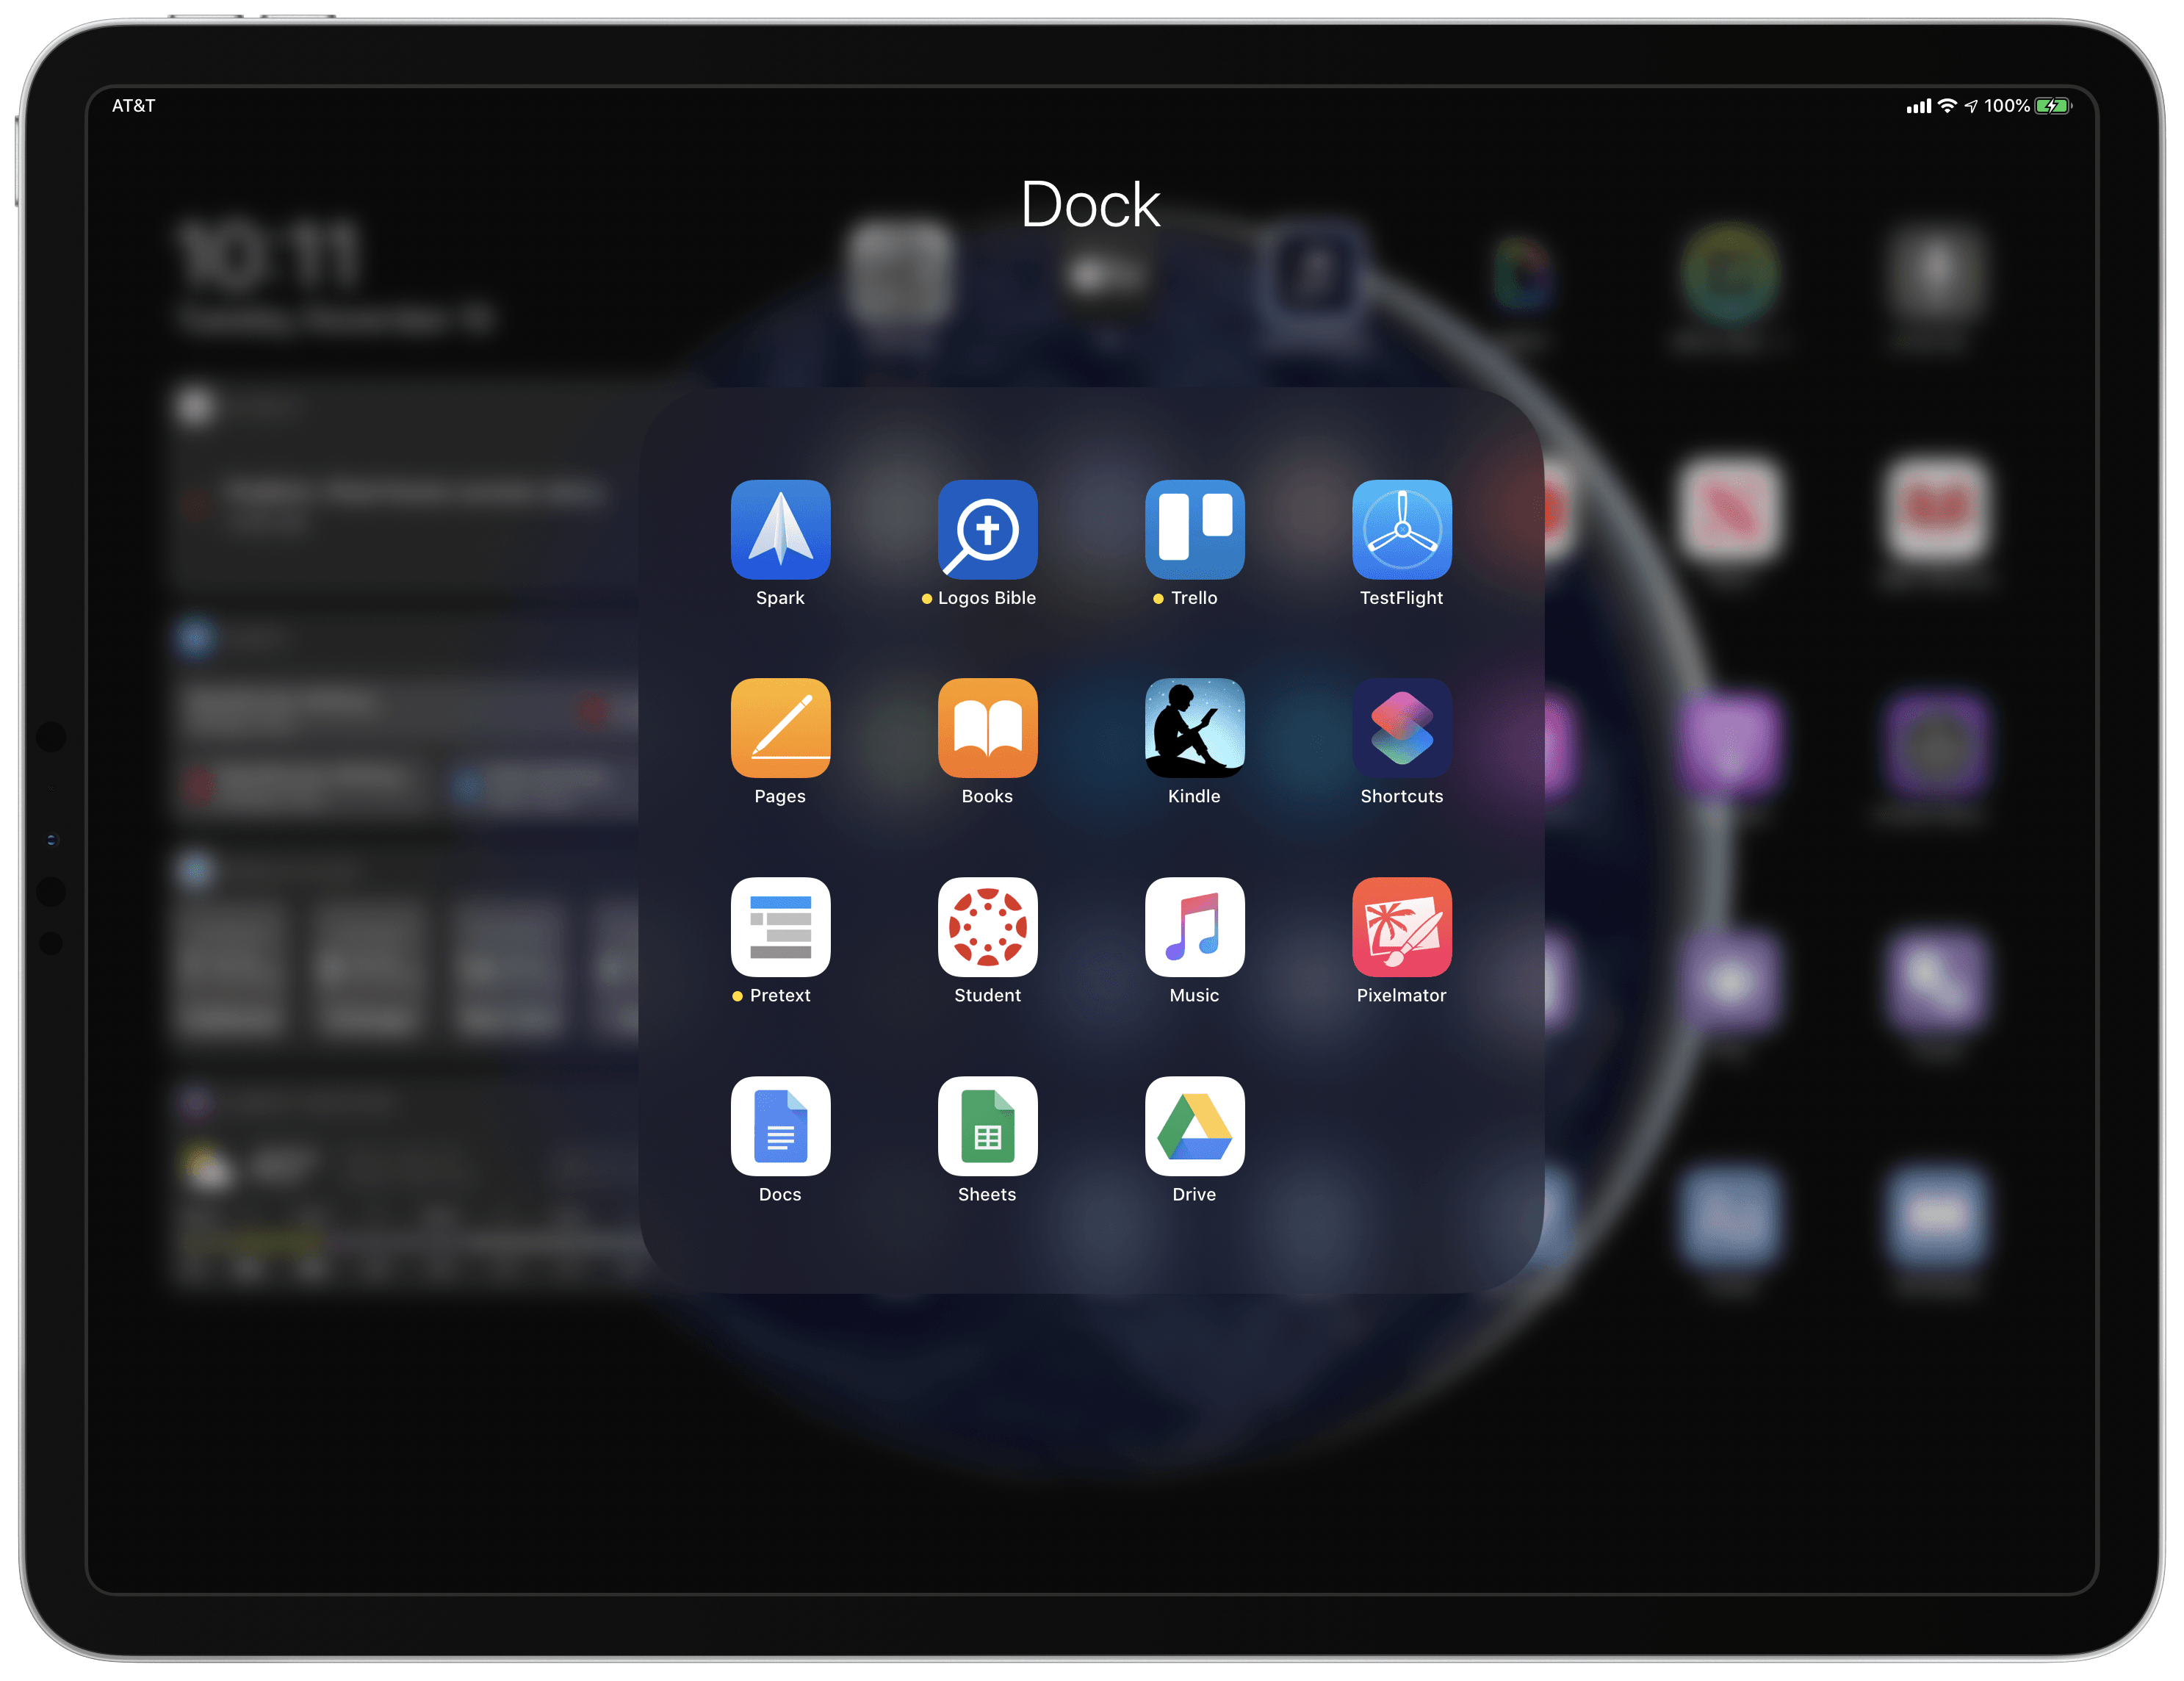 My Modern iPad Home Screen: Apps, Widgets, Files, Folders, and Shortcuts